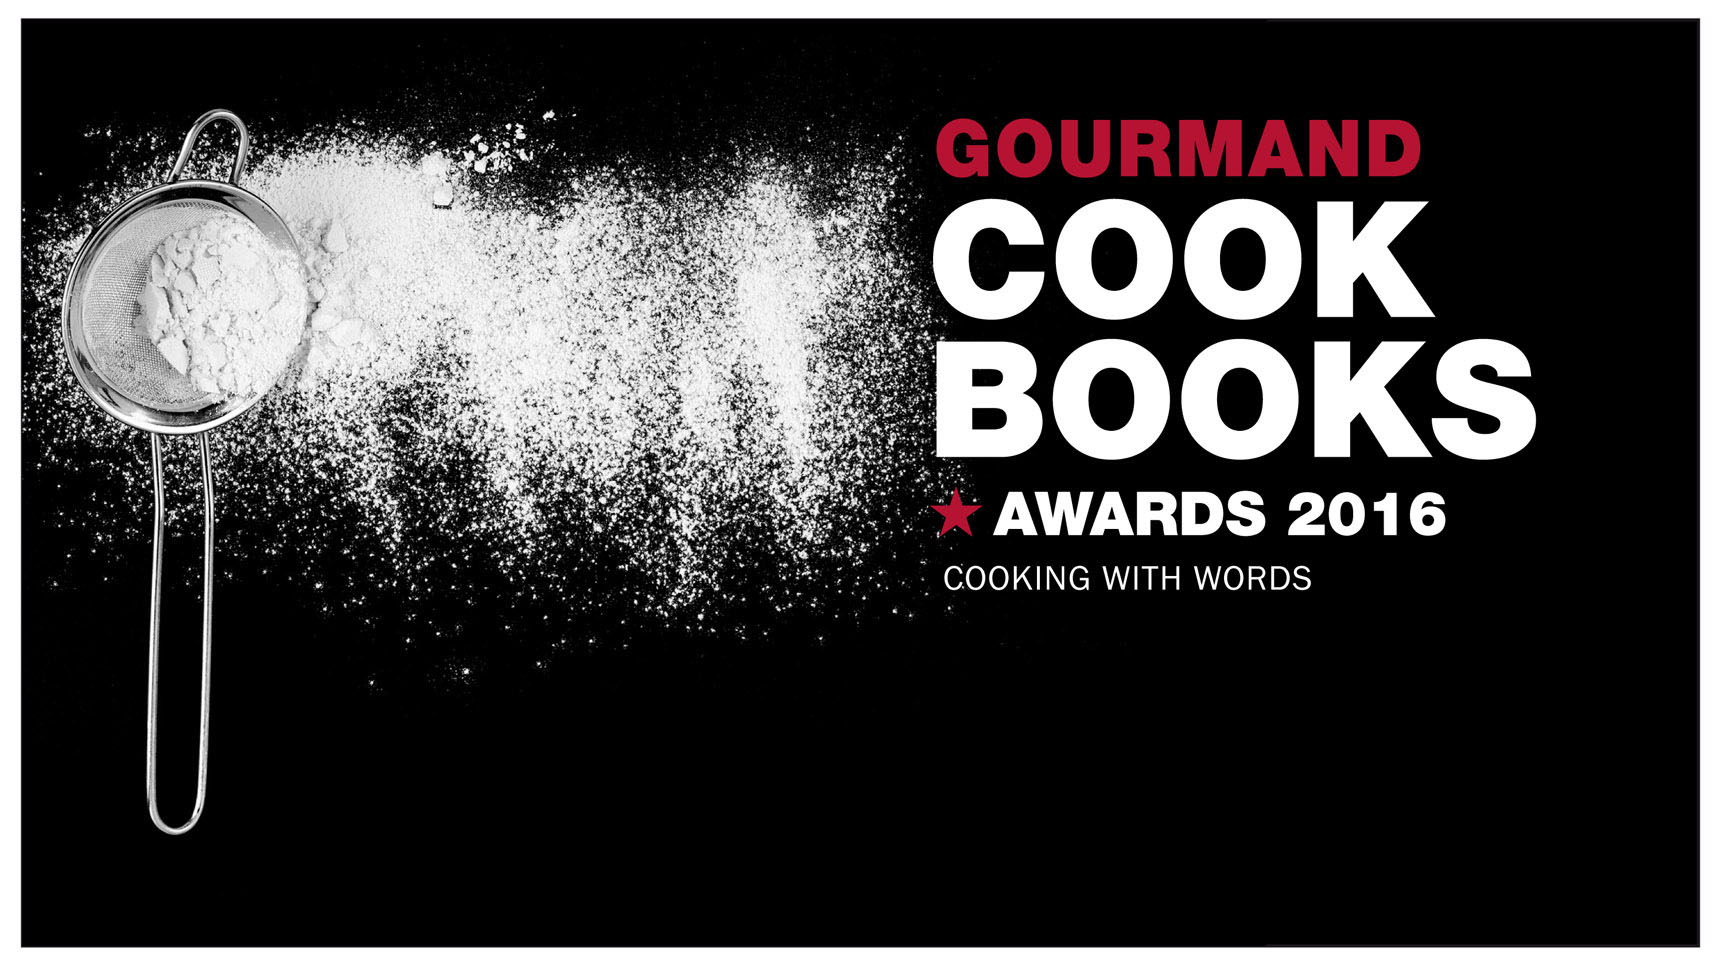 gourmand cookbook awards winners 2016 zoom 296